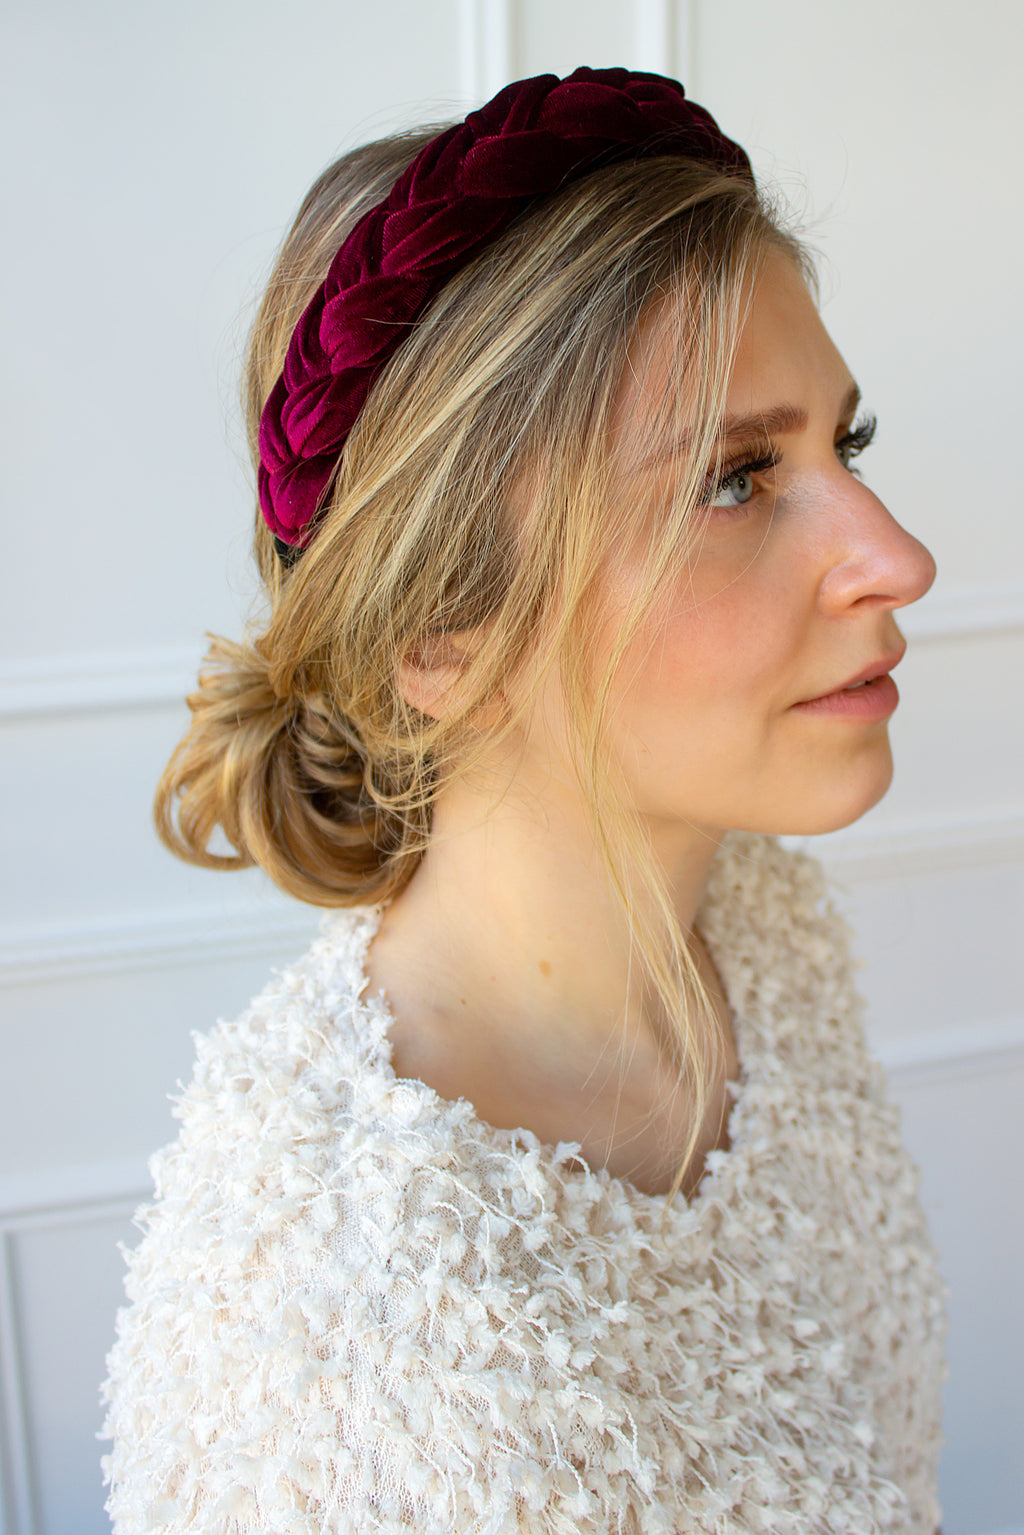 Braided Velvet Headband - cranberry